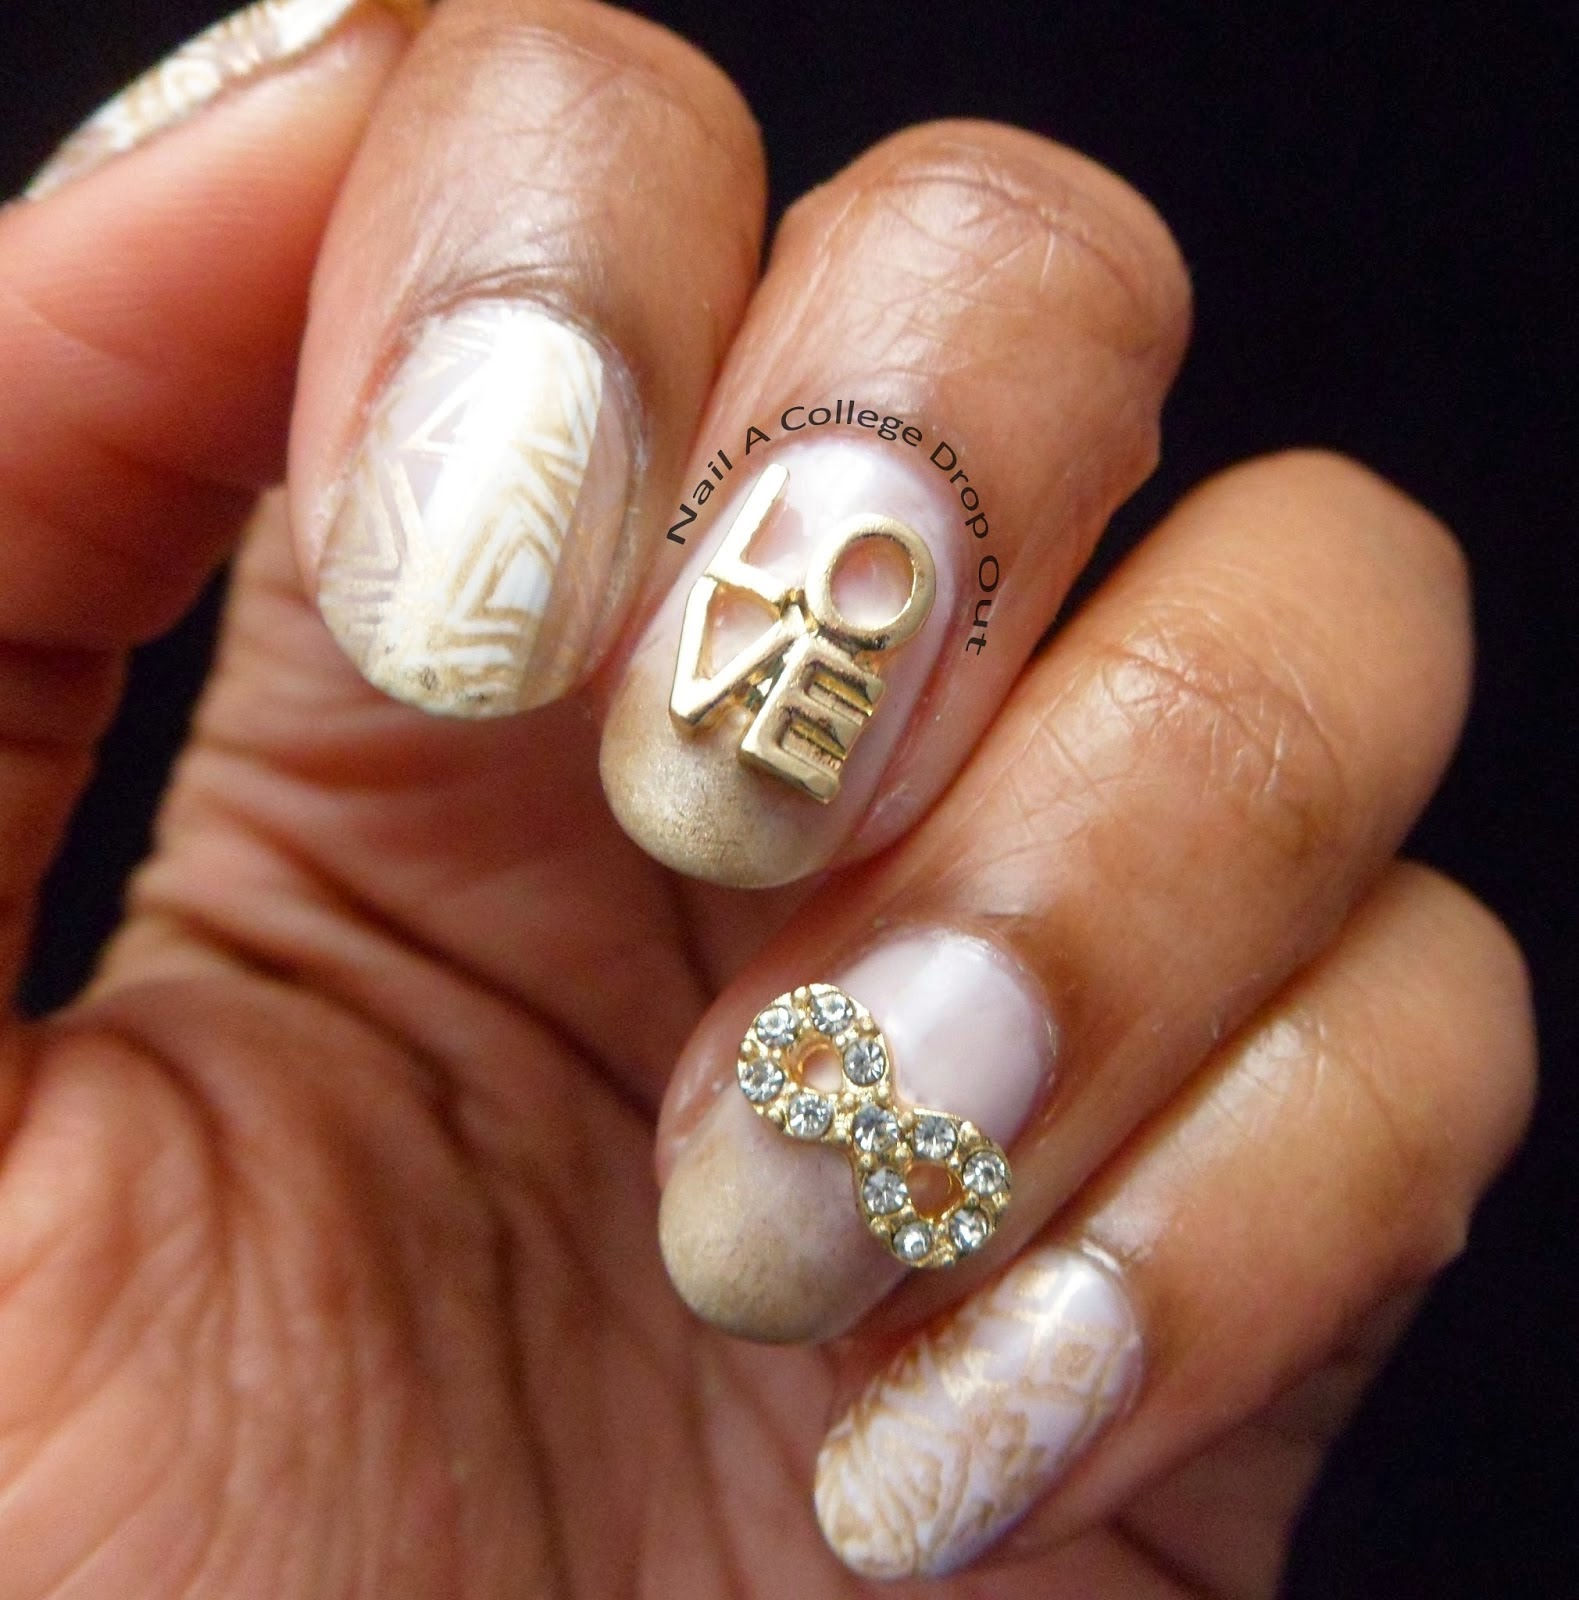 Nail Ideas For April: Born Pretty Store Blog: April Nail Art Designs Show